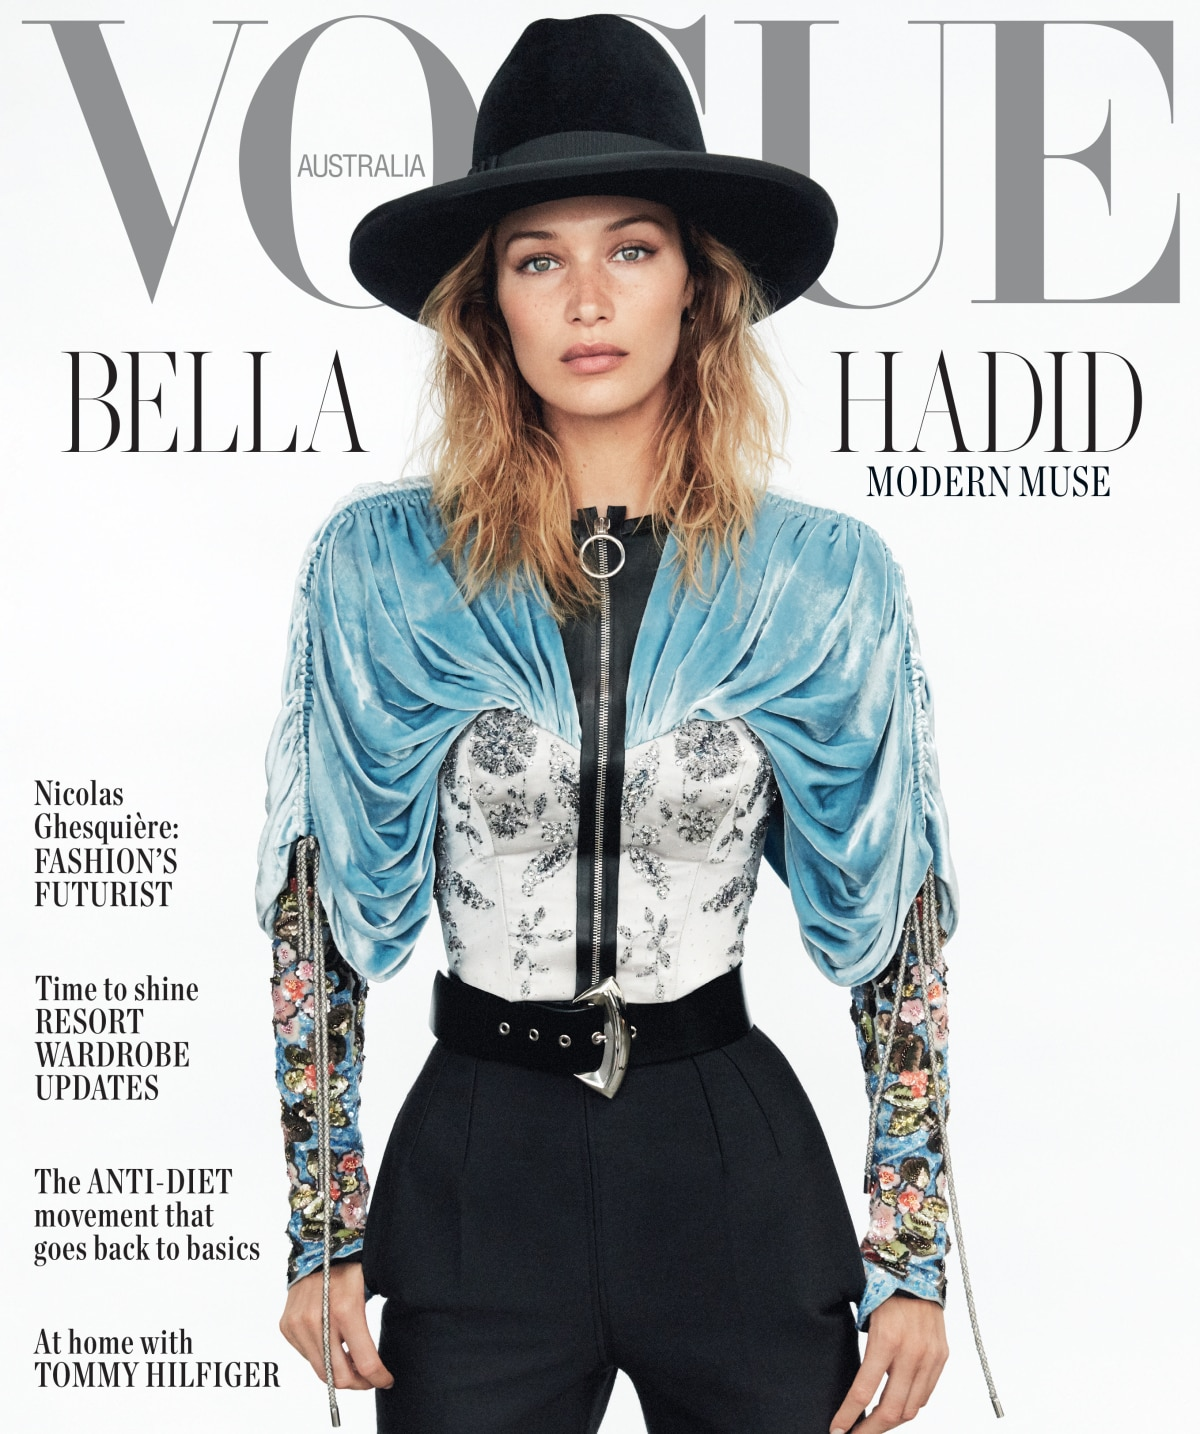 Bella Hadid stars on the cover of Vogue Australia's November 2019 issue